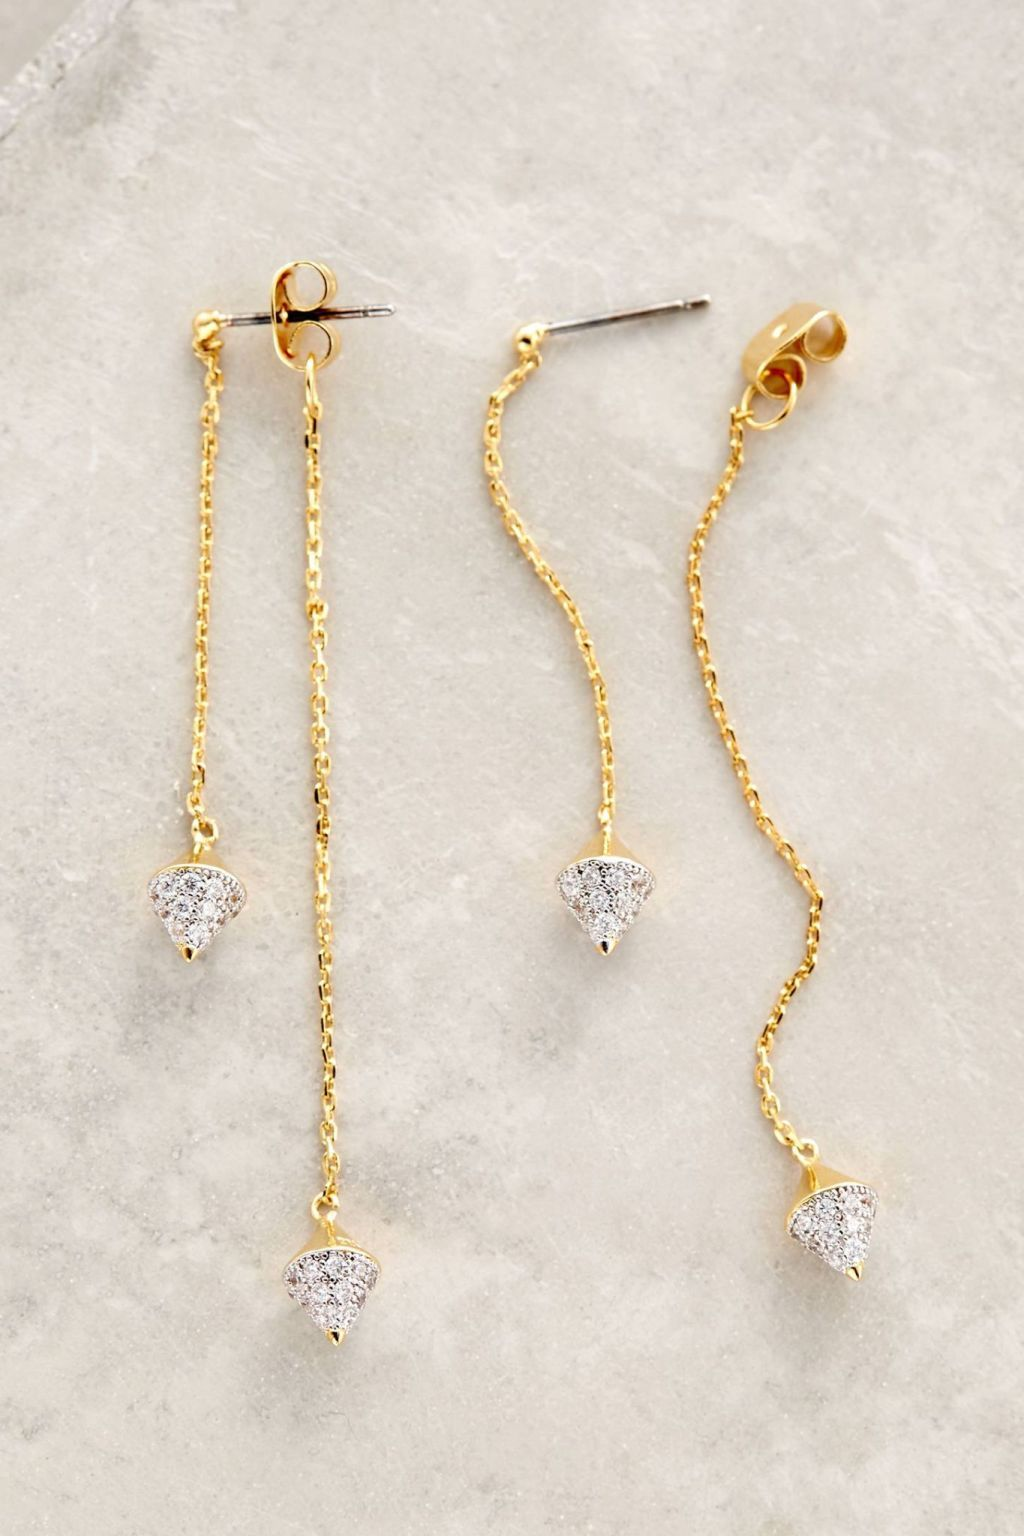 Anthropologies New Arrivals Sparkly Earrings Topista